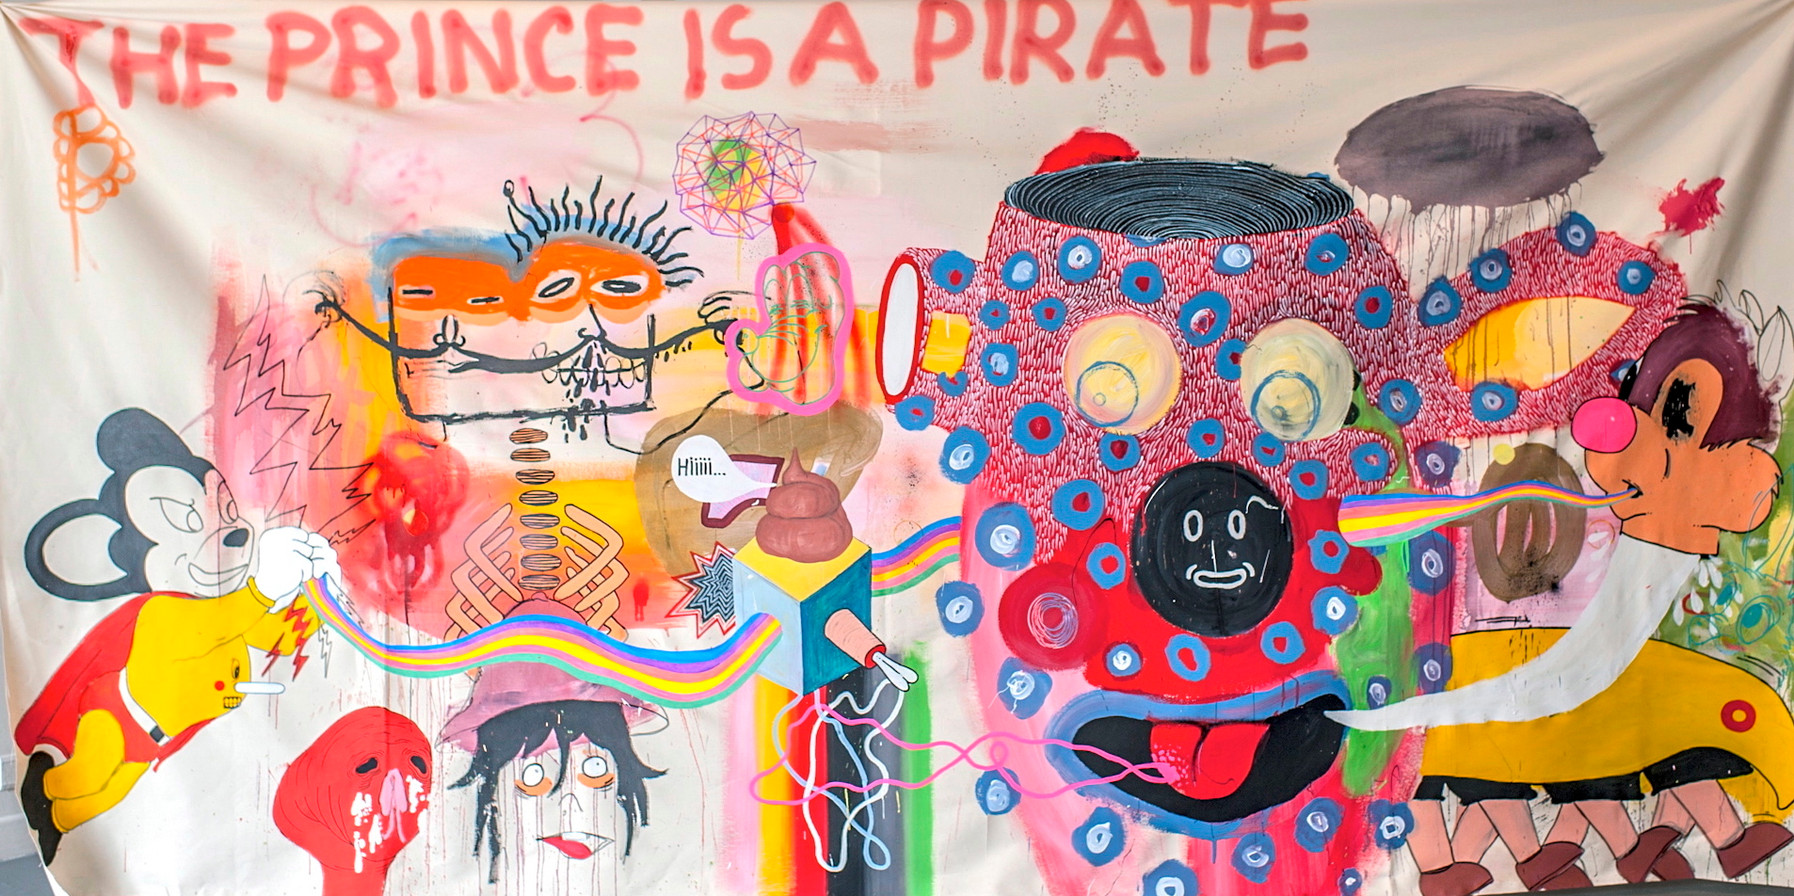 The prince is a pirate - 330 x 180 cm -